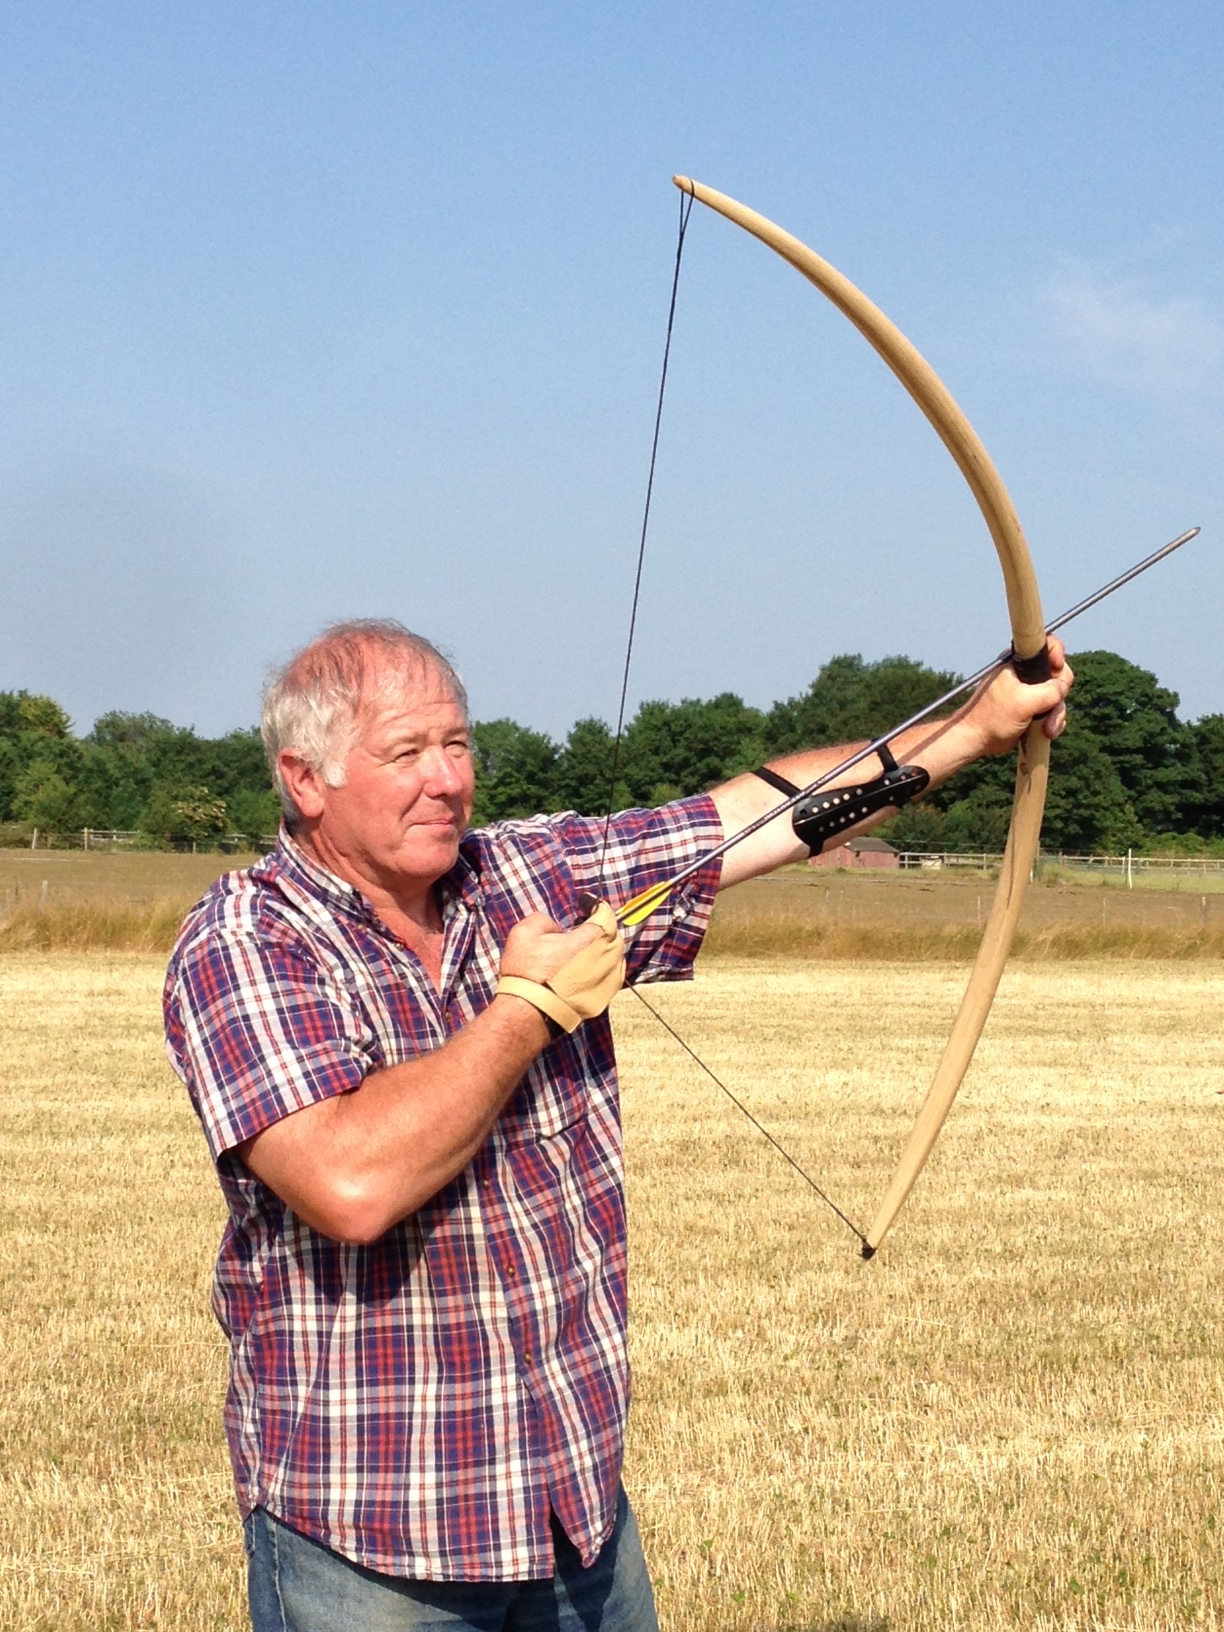 Dad trying out his archery skills